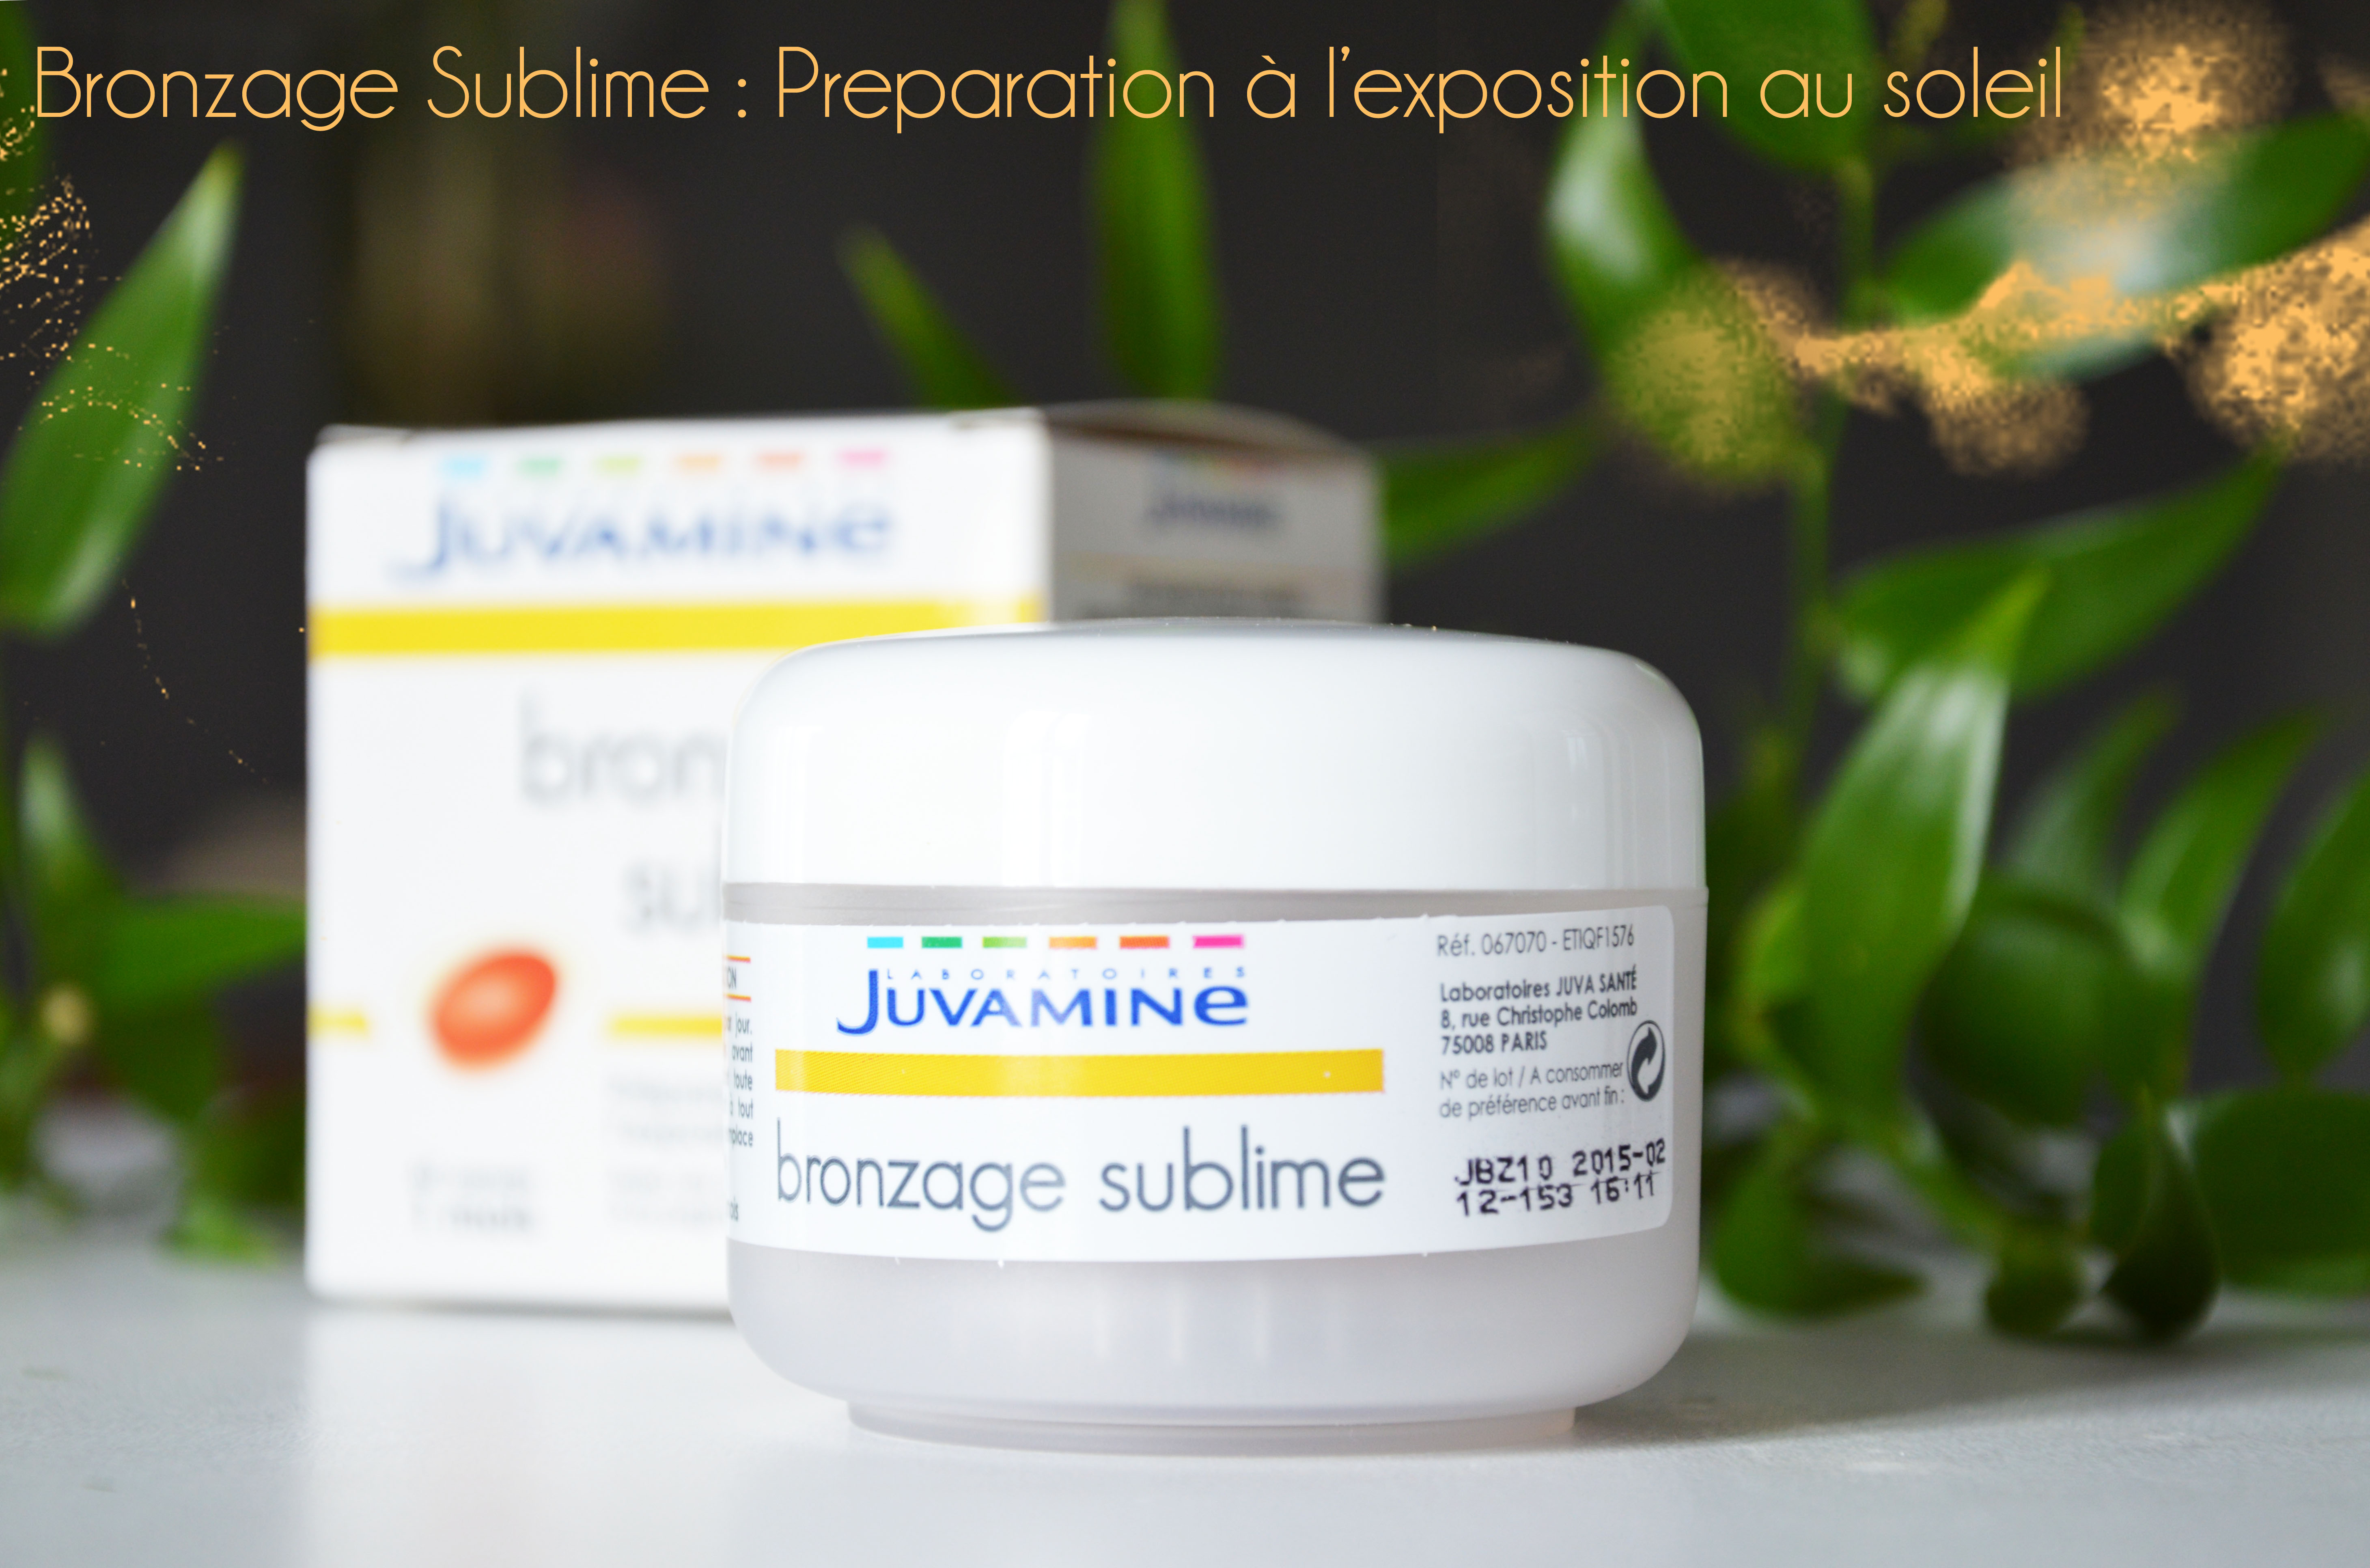 ALITTLEB_BLOG_BEAUTE_JUVAMINE_COMPLEMENTS_ALIMENTAIRES_REVUE_ZOOM_BRONZAGE_SUBLIME